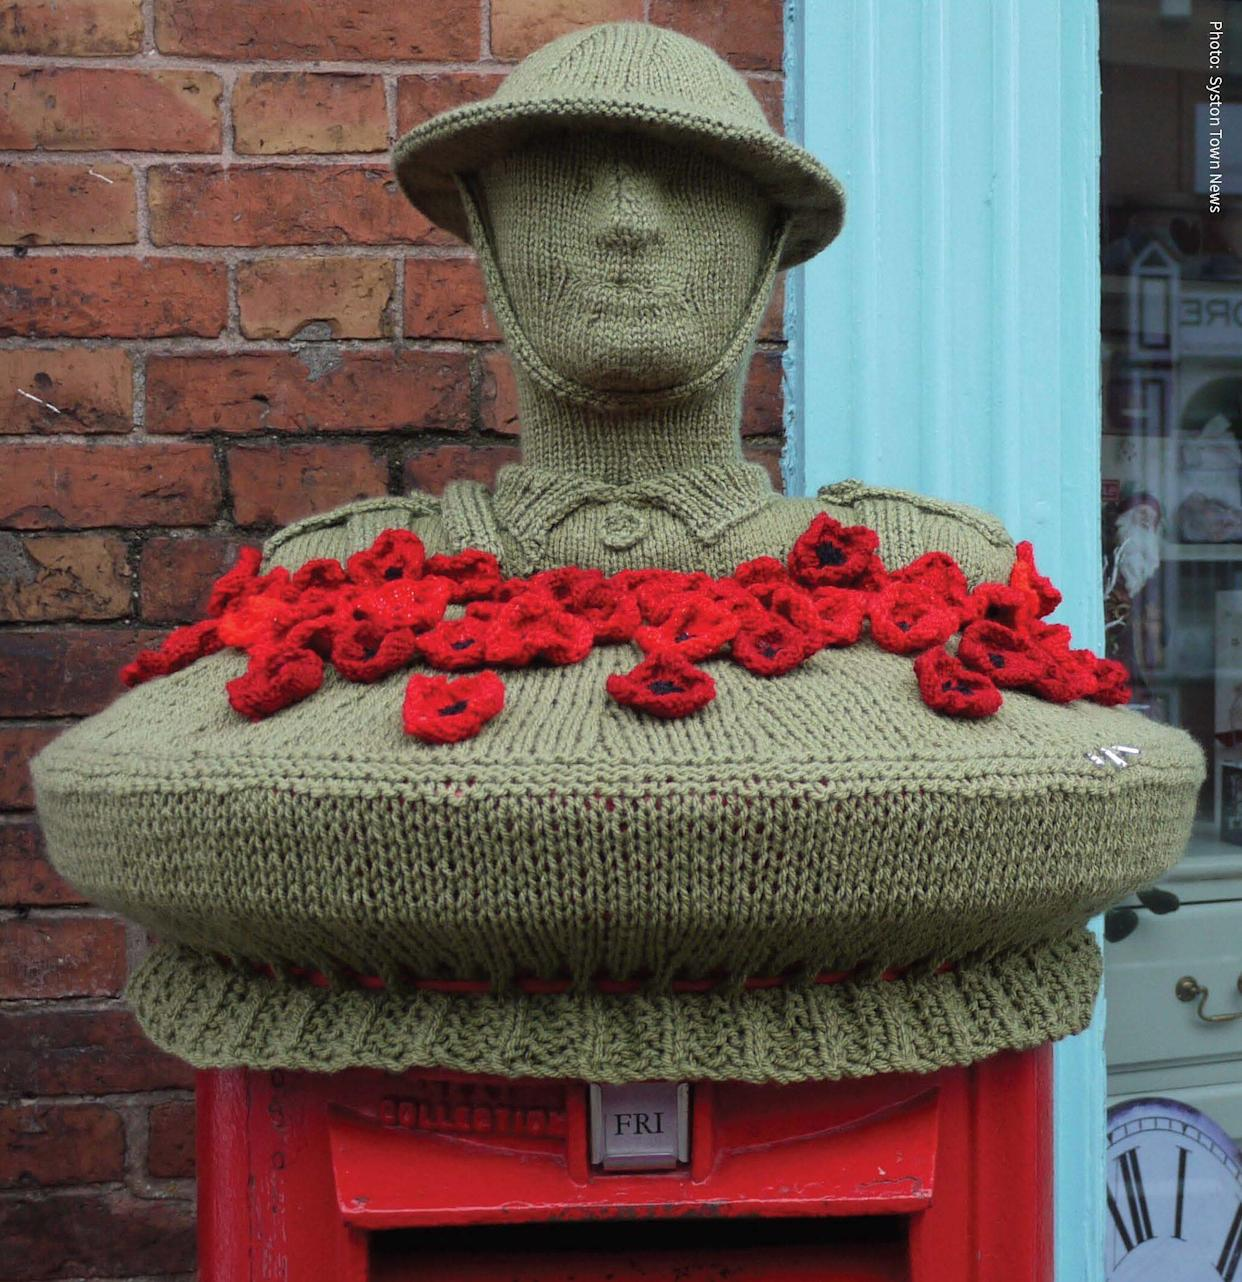 A Remembrance Day topper in Leicestershire (Lockdown Letterboxes/PA)